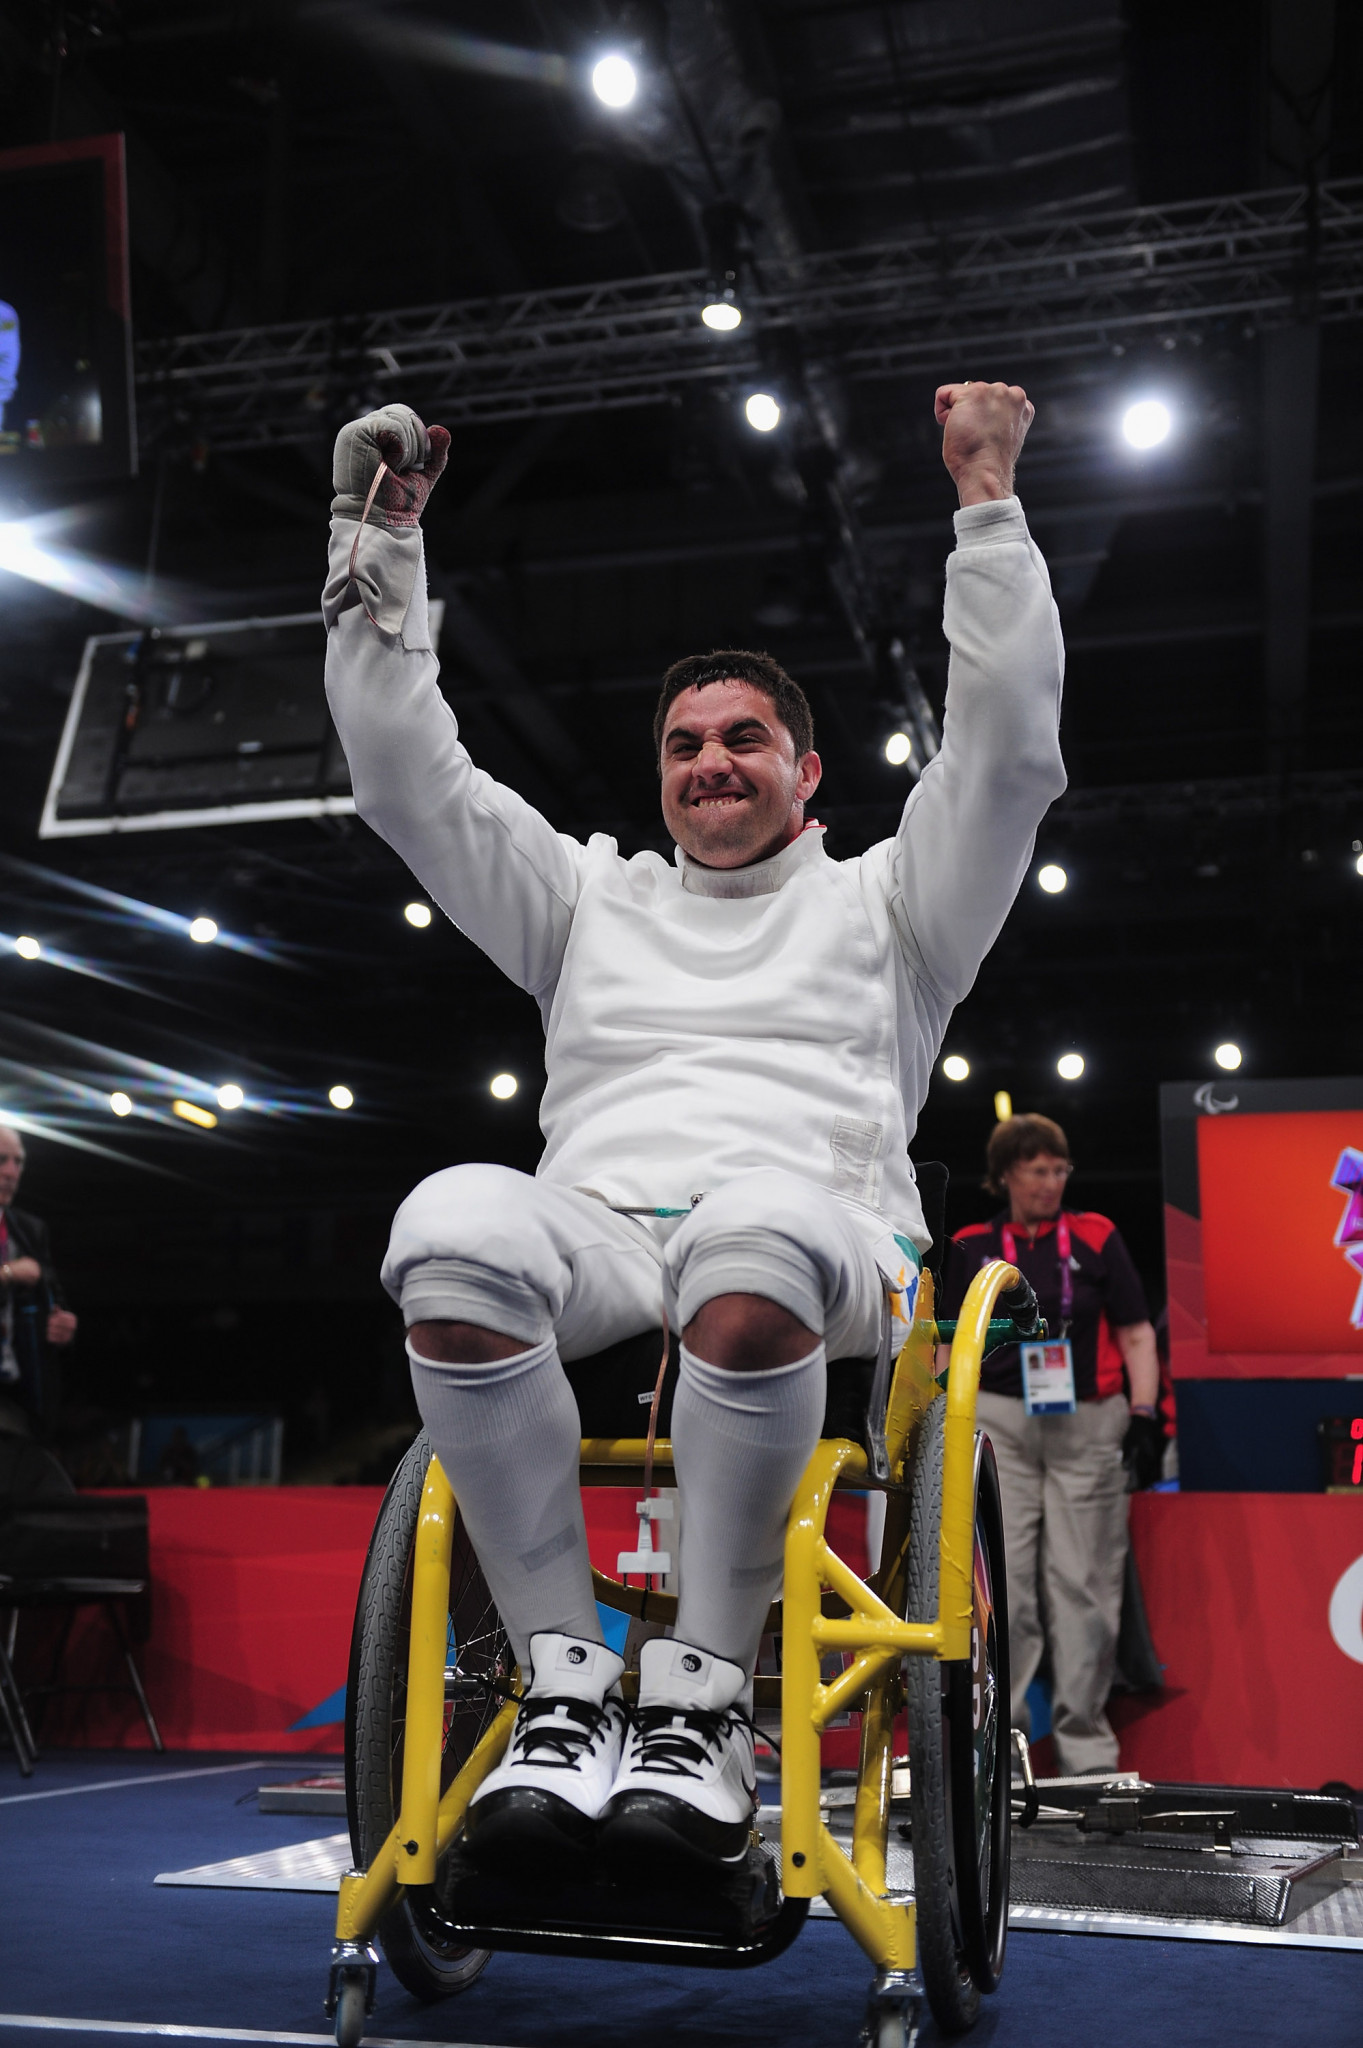 Brazil's Guissone geared-up for home IWAS Wheelchair Fencing World Cup in São Paulo